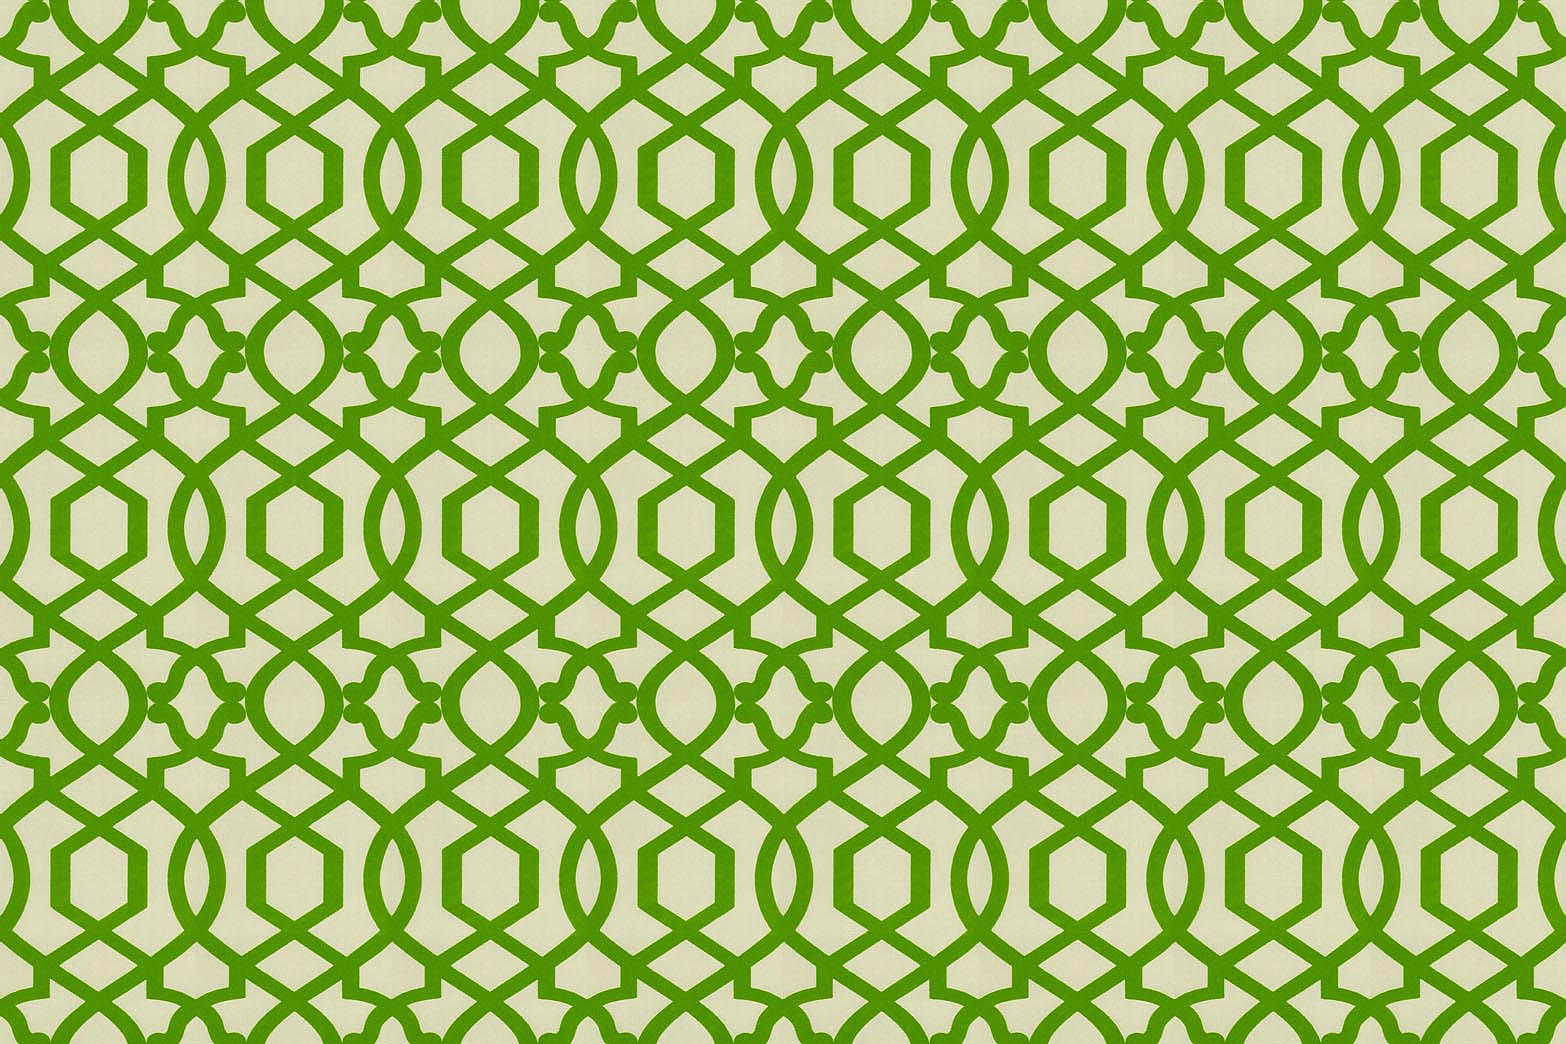 Home Decor 8\u0022x8\u0022 Fabric Swatch-IMAN Sultana Lattice Citrine